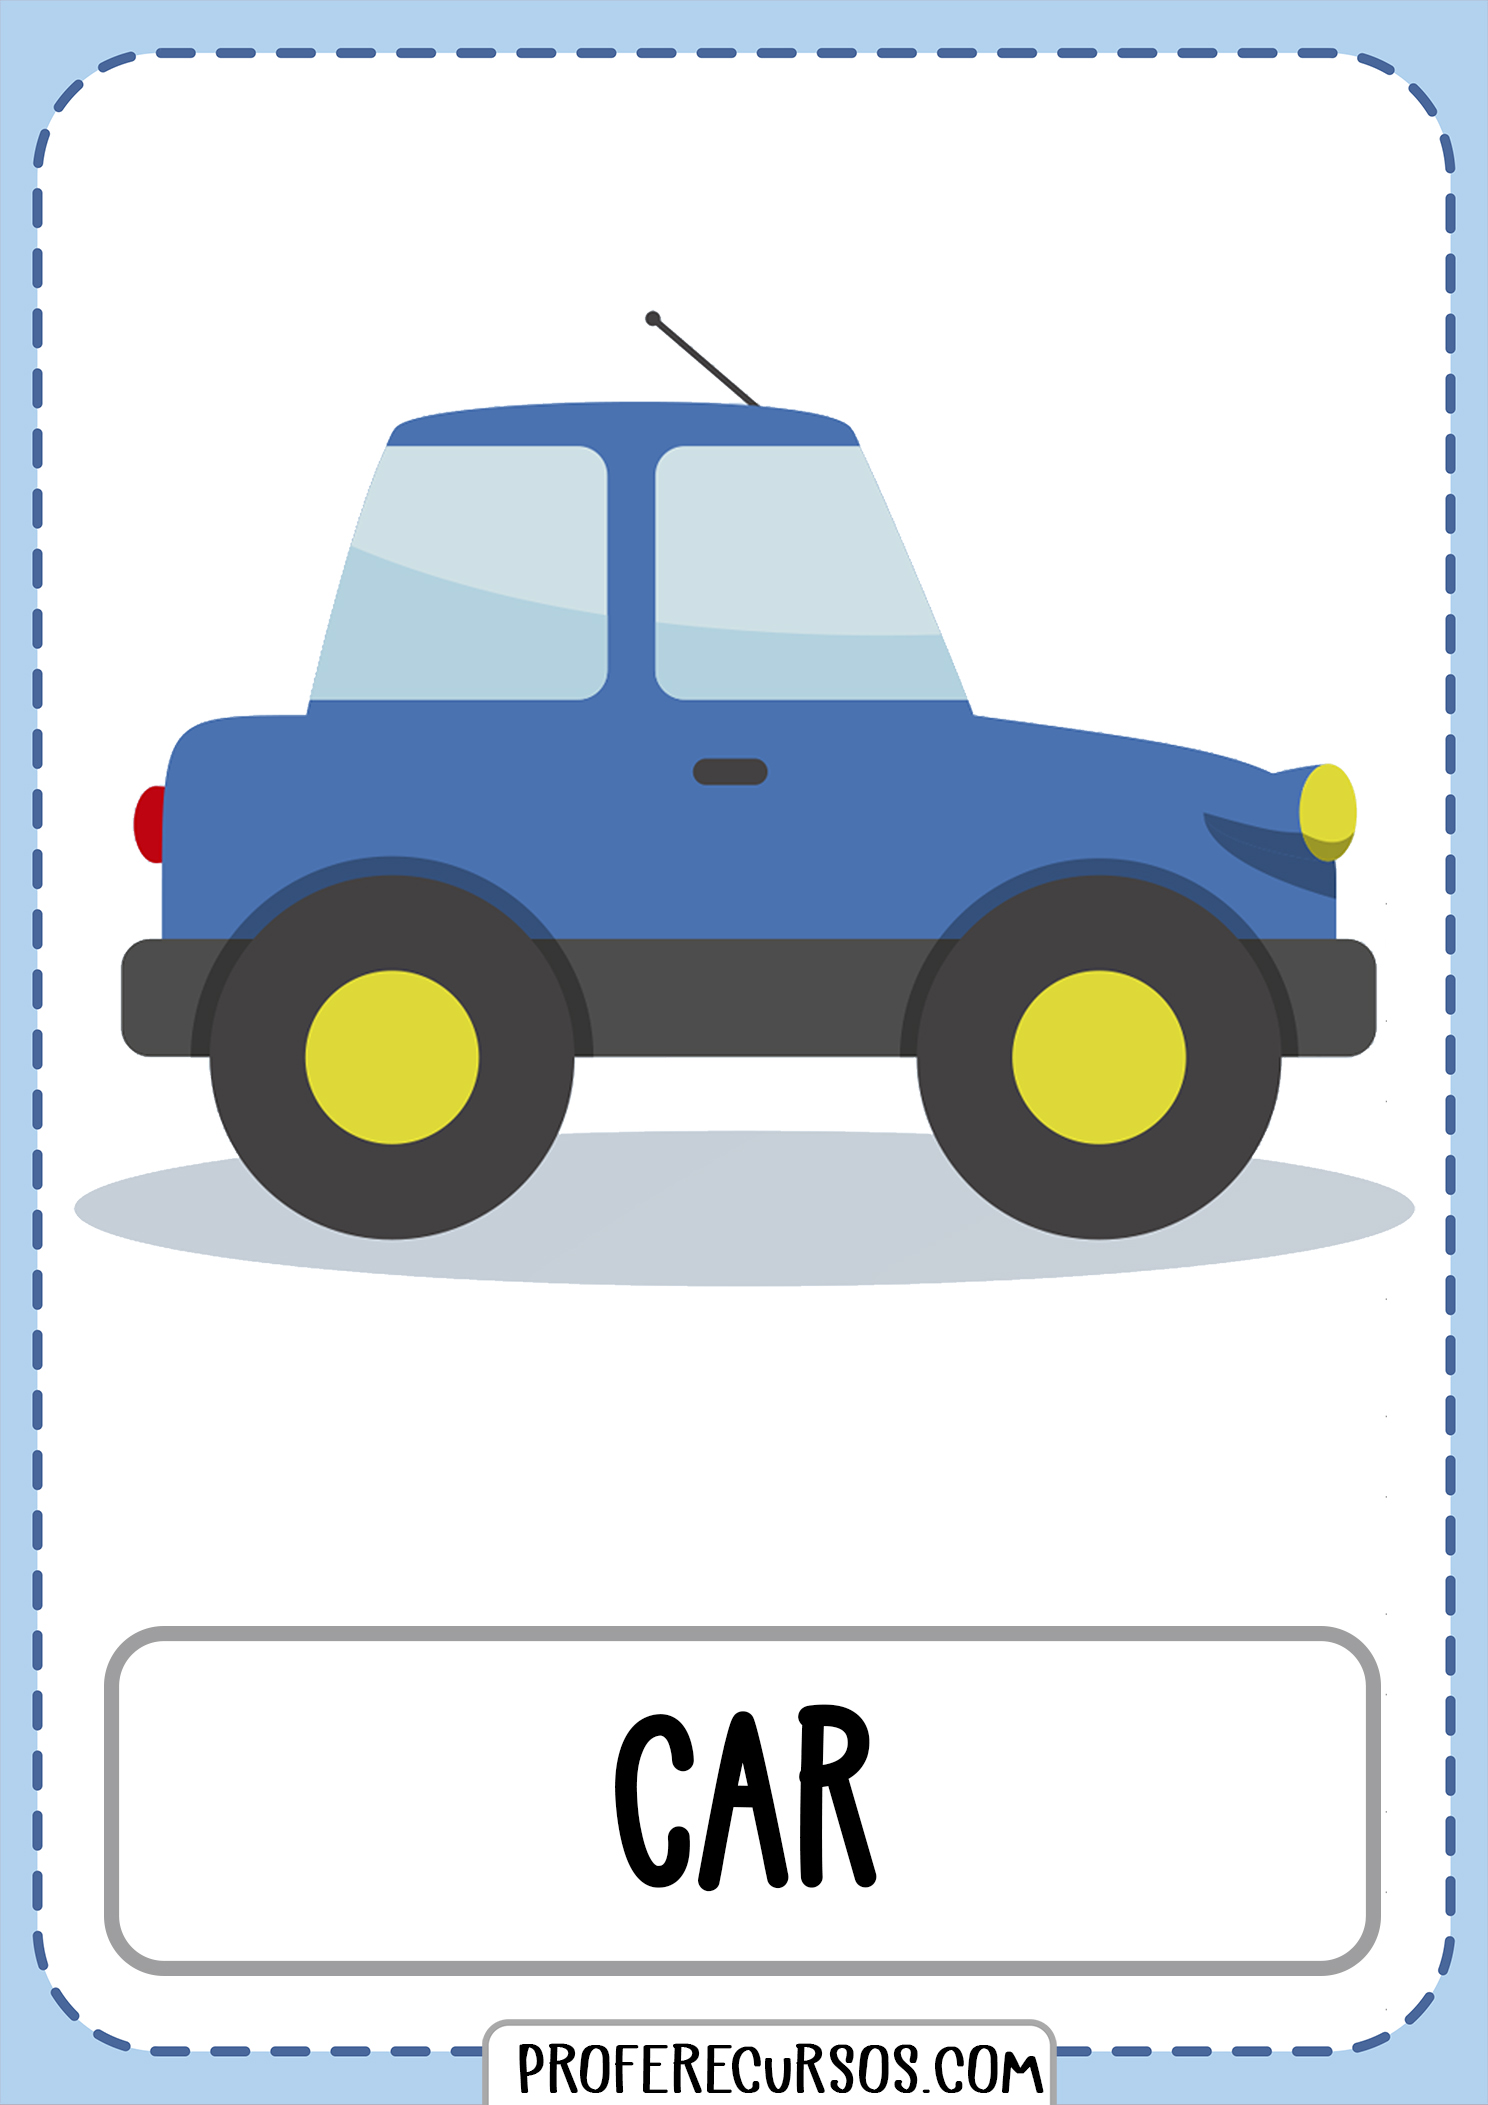 Means-of-transport-vocabulary-car